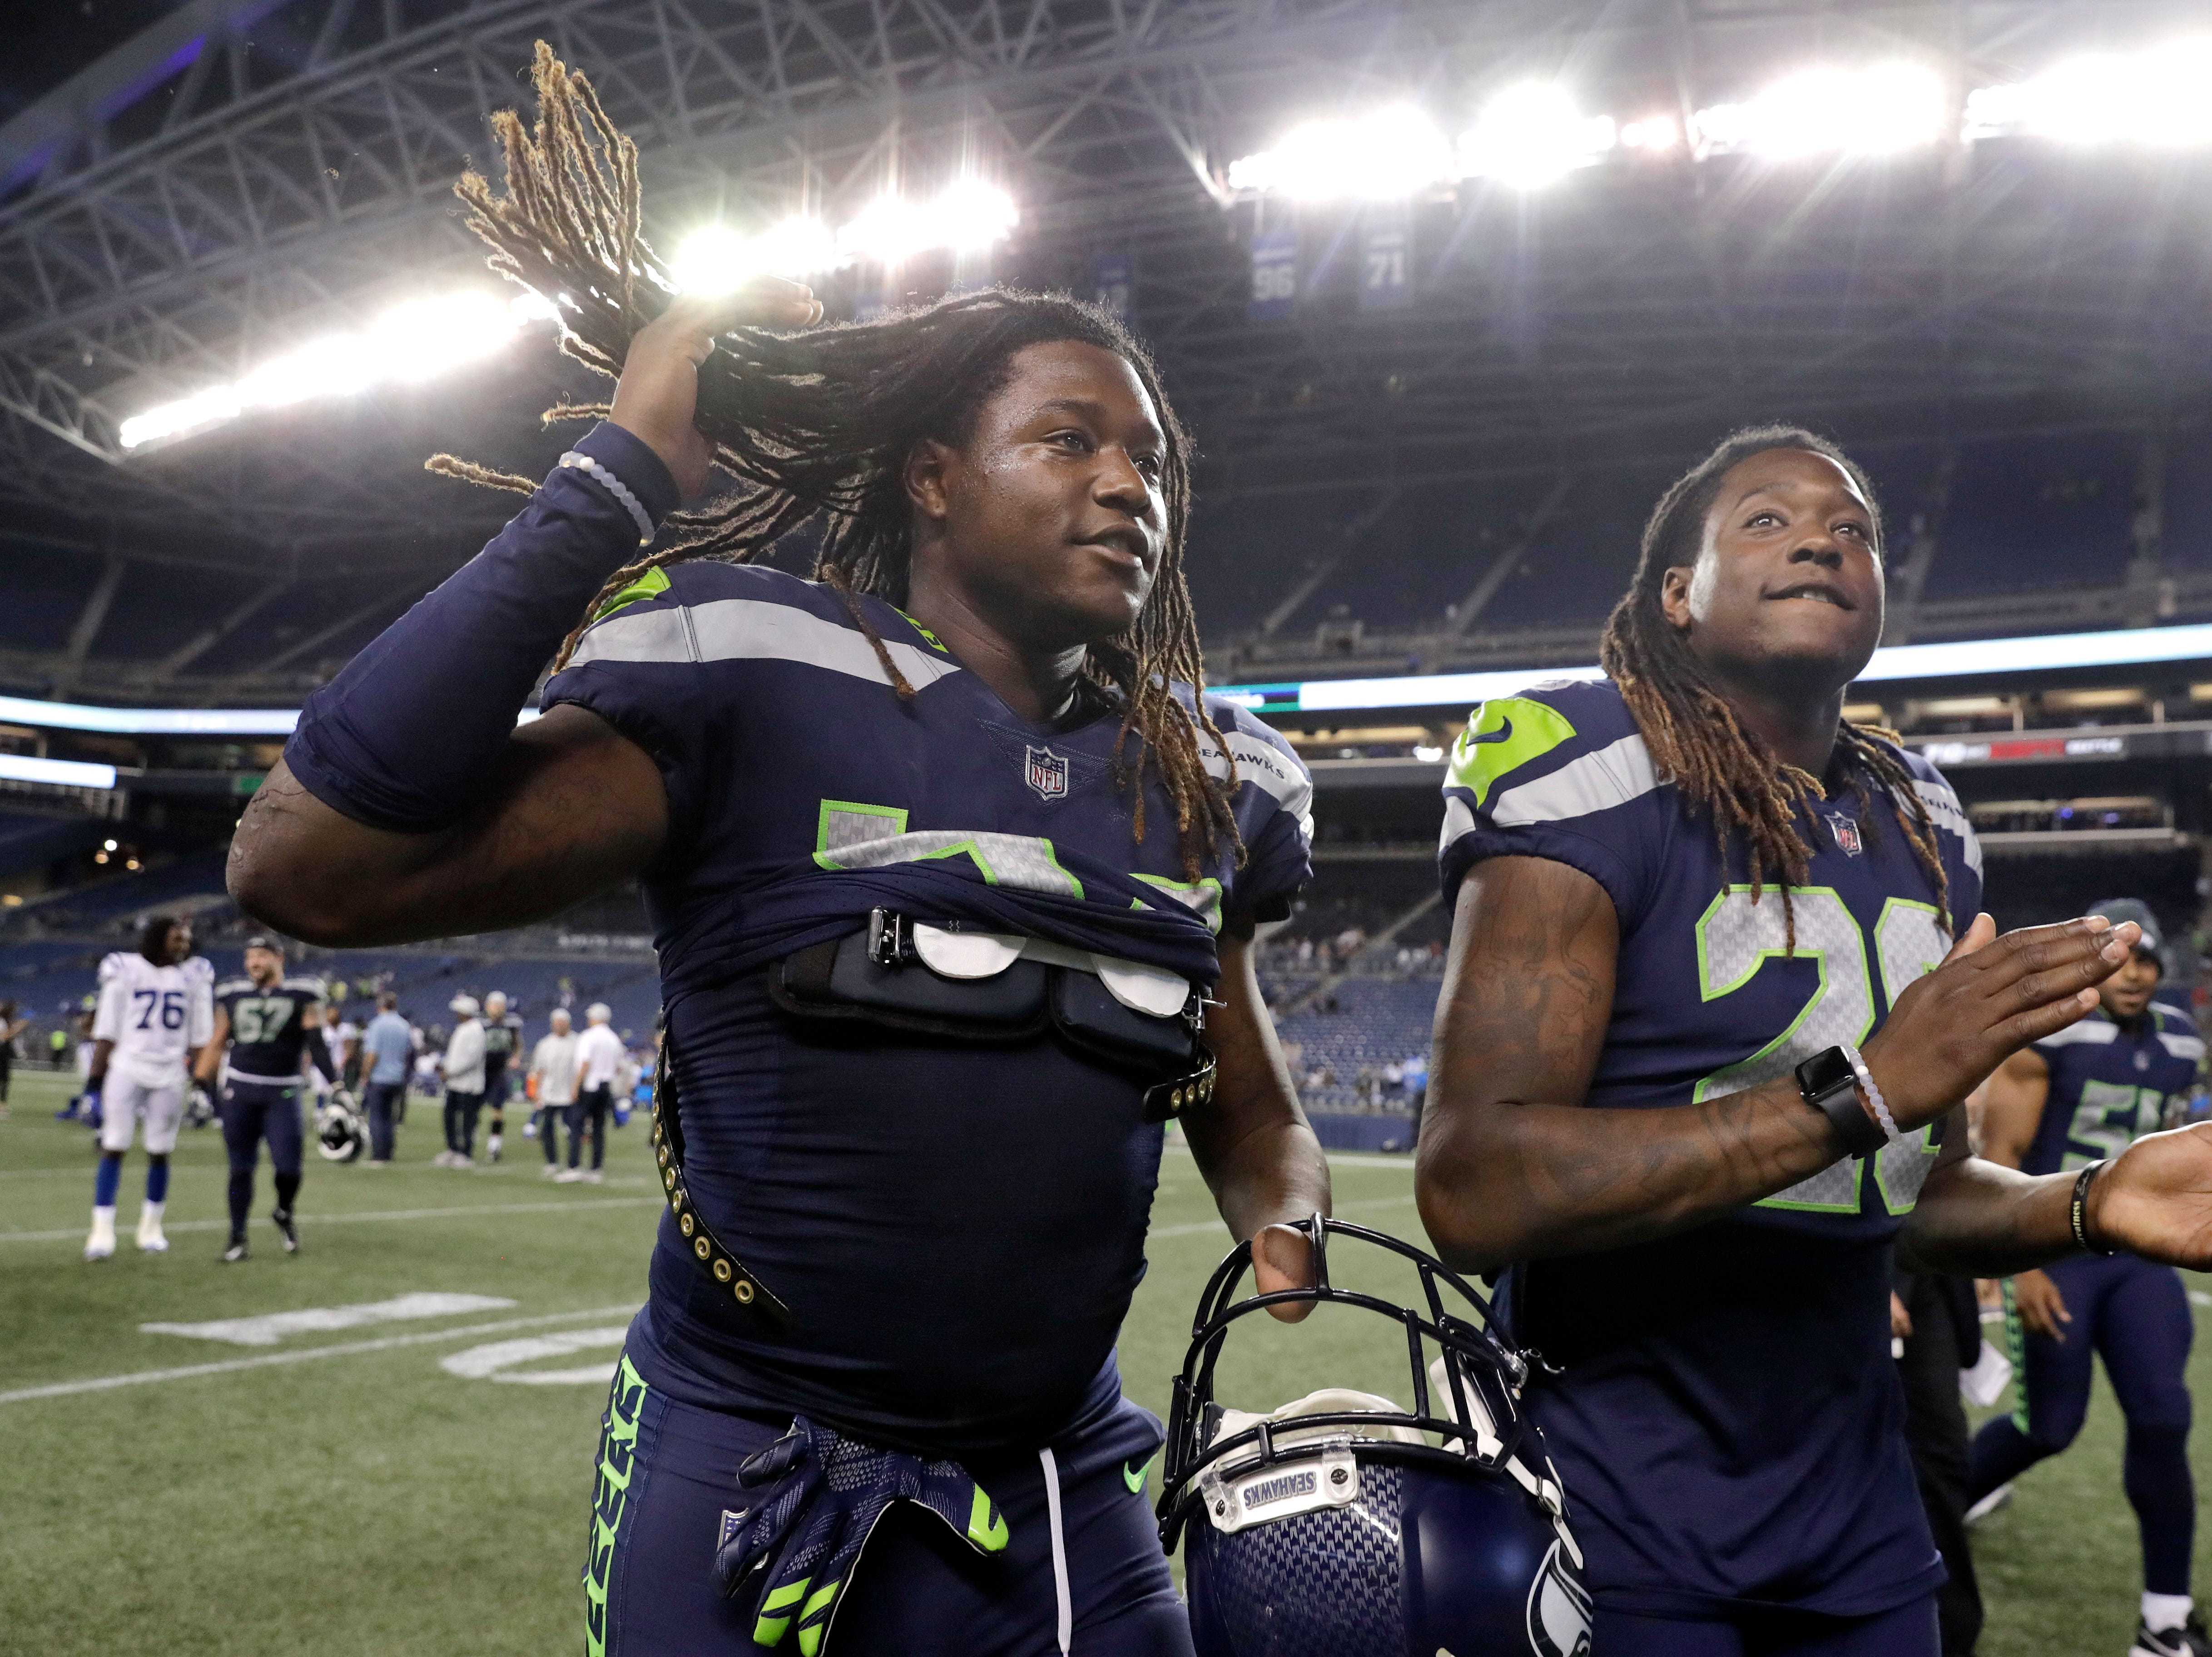 Seattle Seahawks twin brothers linebacker Shaquem Griffin, left, and cornerback Shaquill Griffin leave the field following the team's NFL football preseason game against the Indianapolis Colts, Thursday, Aug. 9, 2018, in Seattle. The Colts won 19-17. (AP Photo/Stephen Brashear)